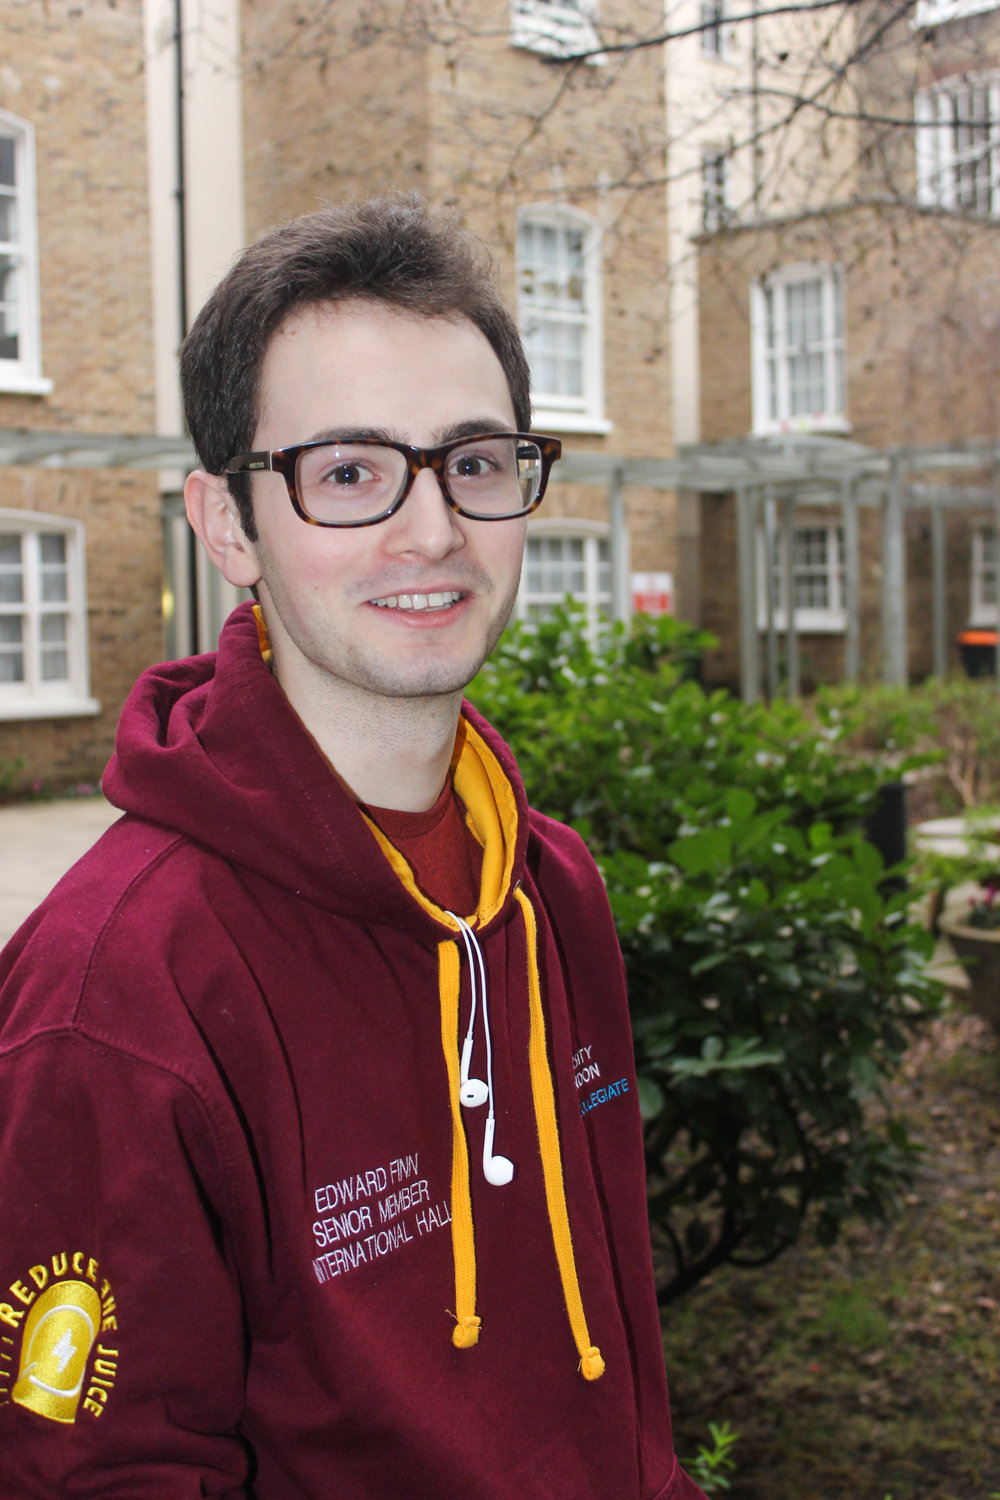 Edward Finn Senior Member Ed studies Entrepreneurship at University College London. Ed is a a big fan of hiking and the outdoors. At International Hall, He advises the IH Community Volunteers along with Ana. He can be reached at ed@internationalhall.com